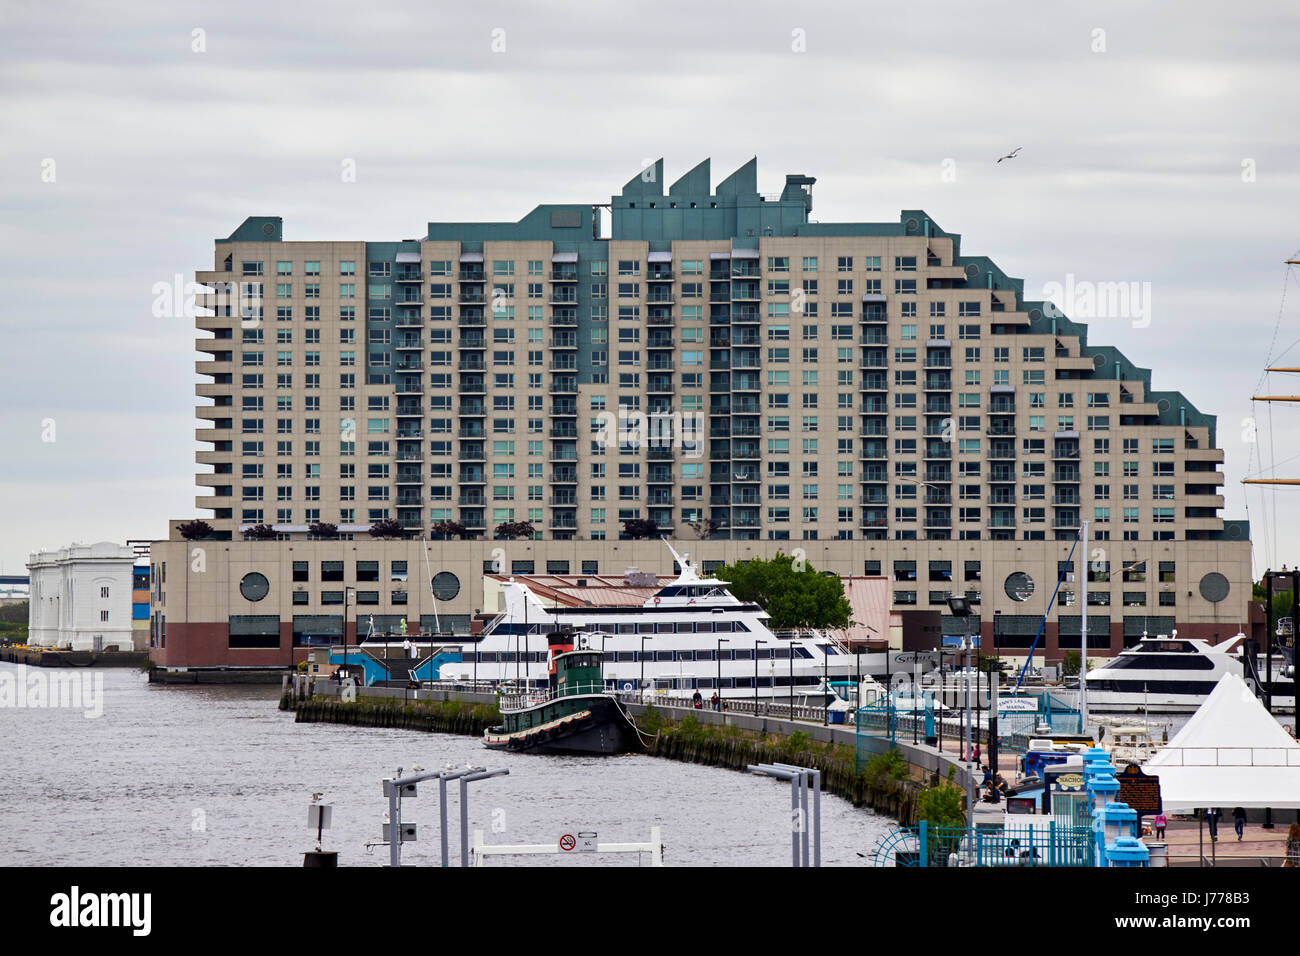 residences at dockside apartment building on the waterfront philadelphia USA - Stock Image